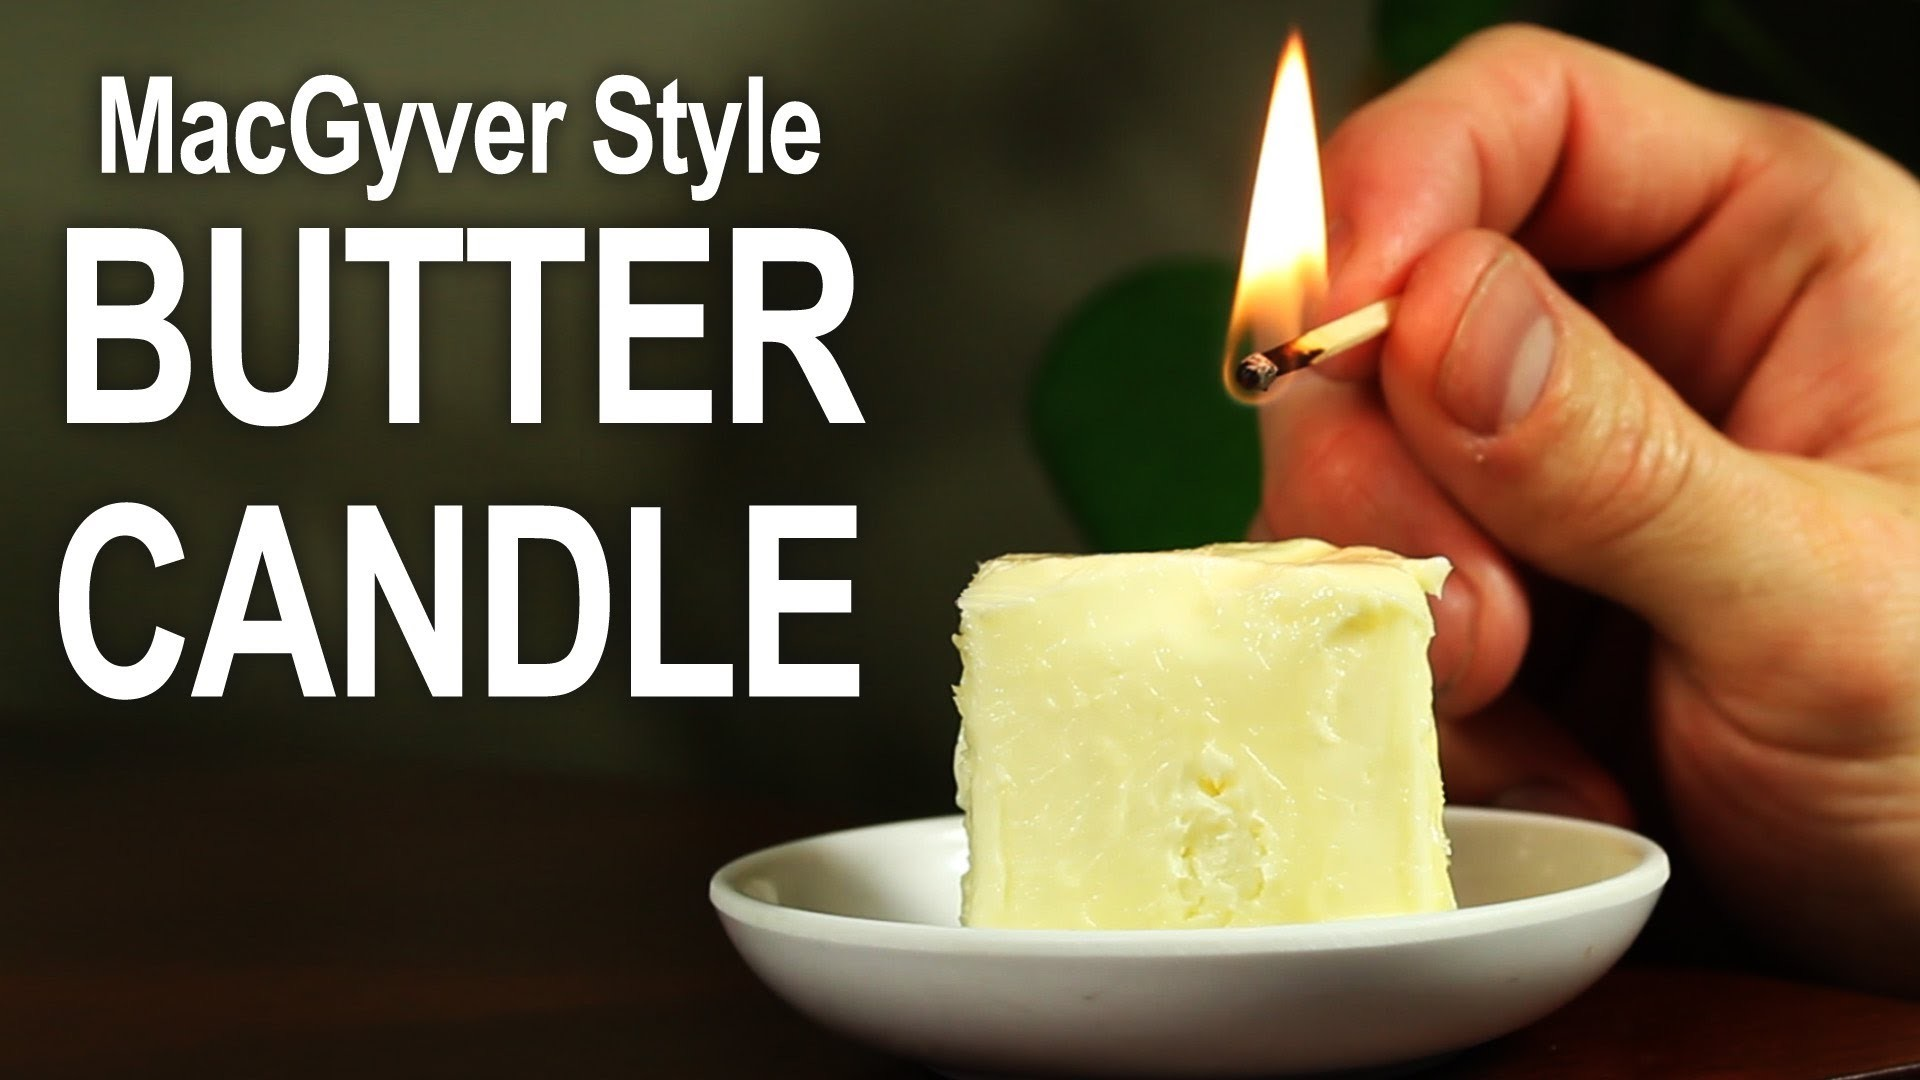 Make An Emergency Candle Out Of Butter!